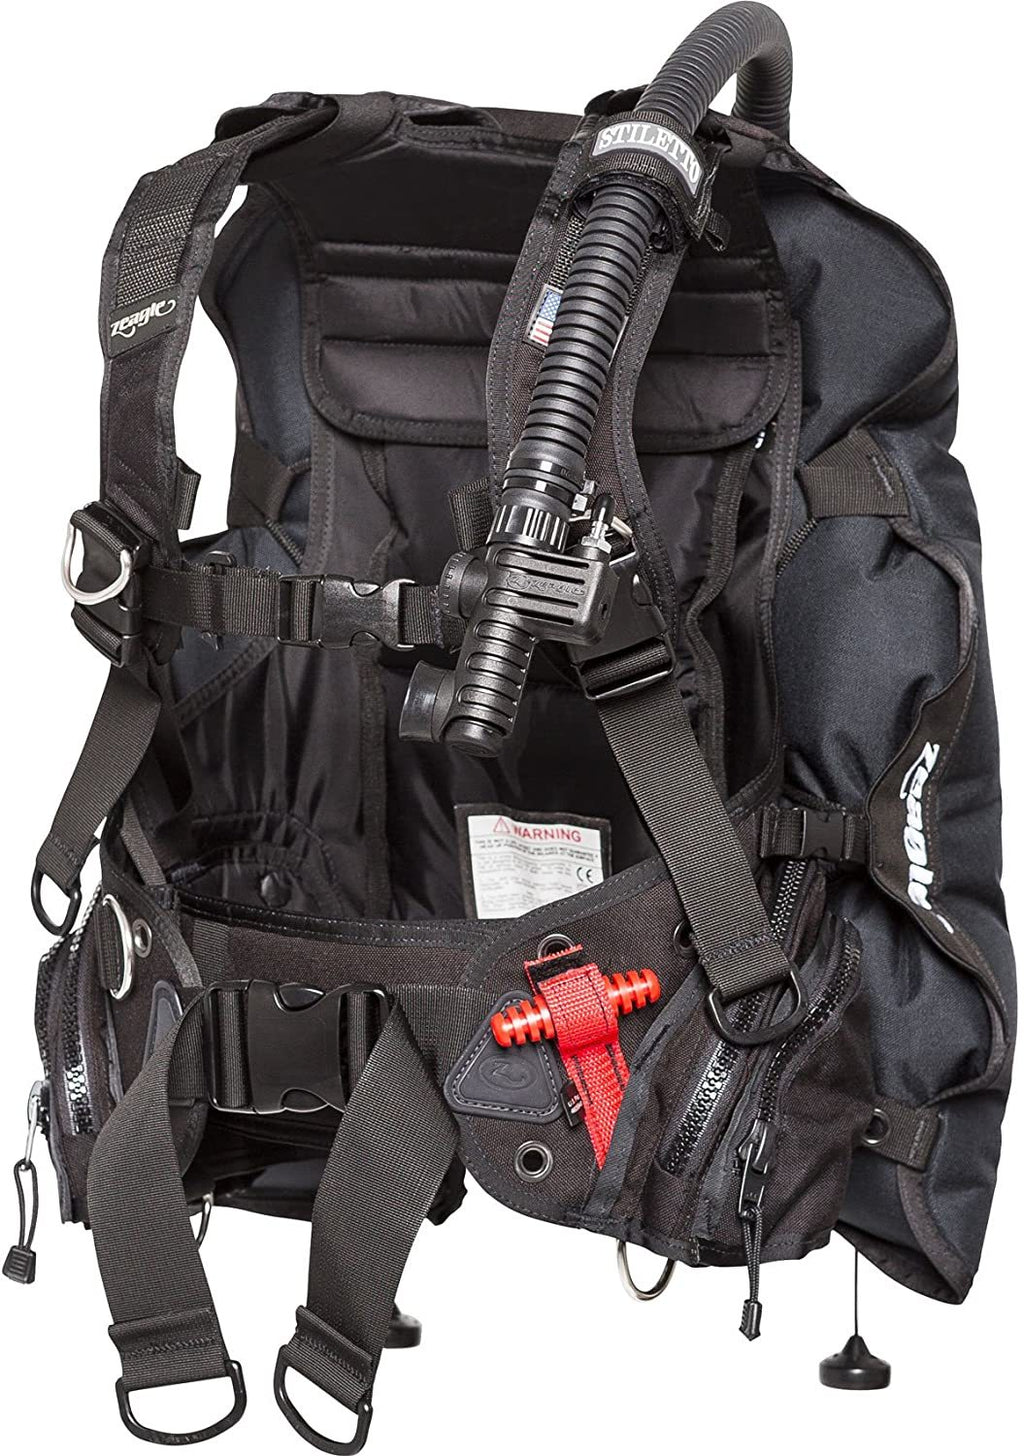 Zeagle Stiletto BCD with the Ripcord Weight System